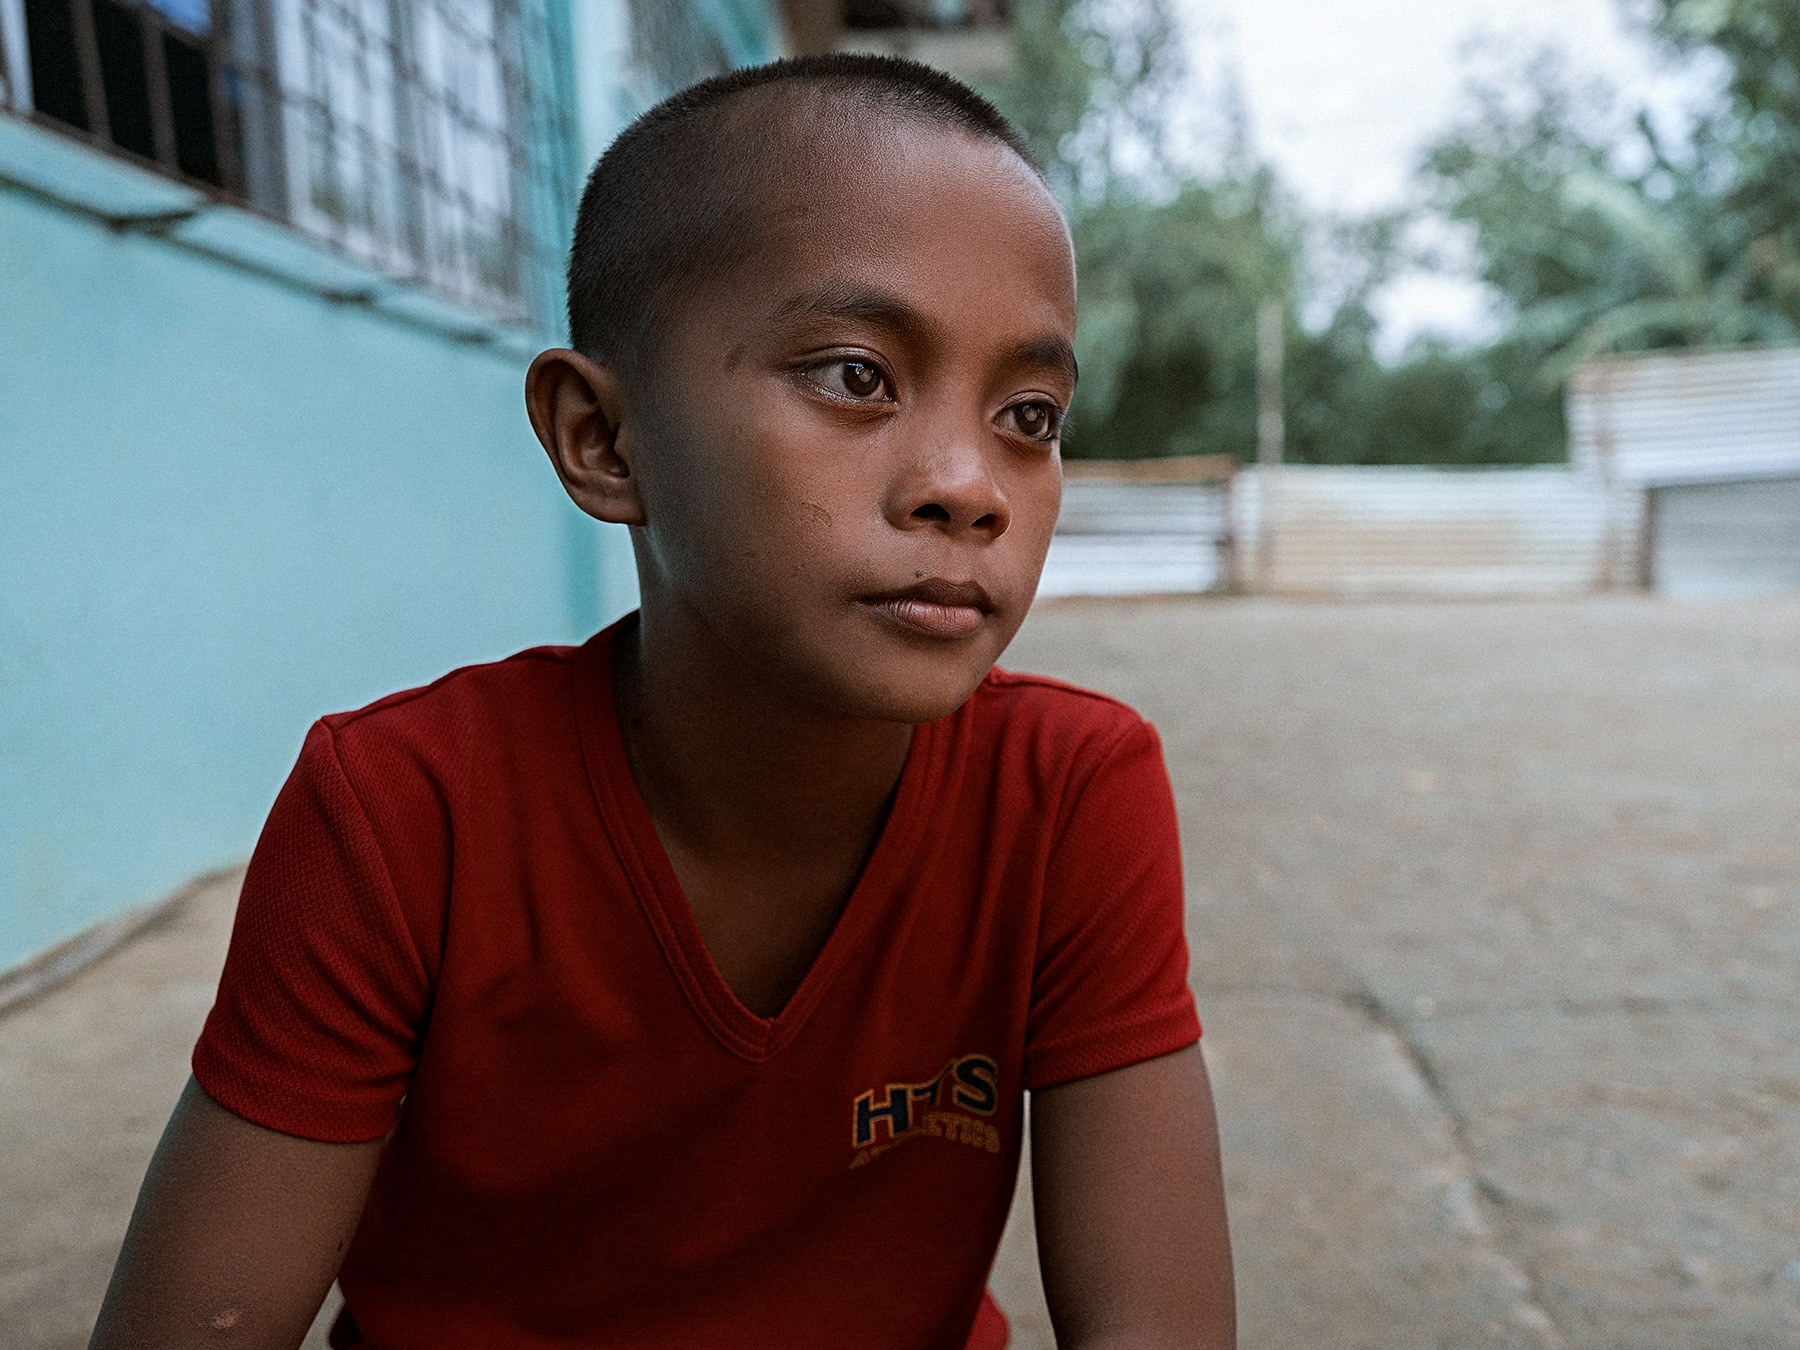 Good Boy Wolf Photographer, Philippines, young boy looking sad wearing a red t shirt